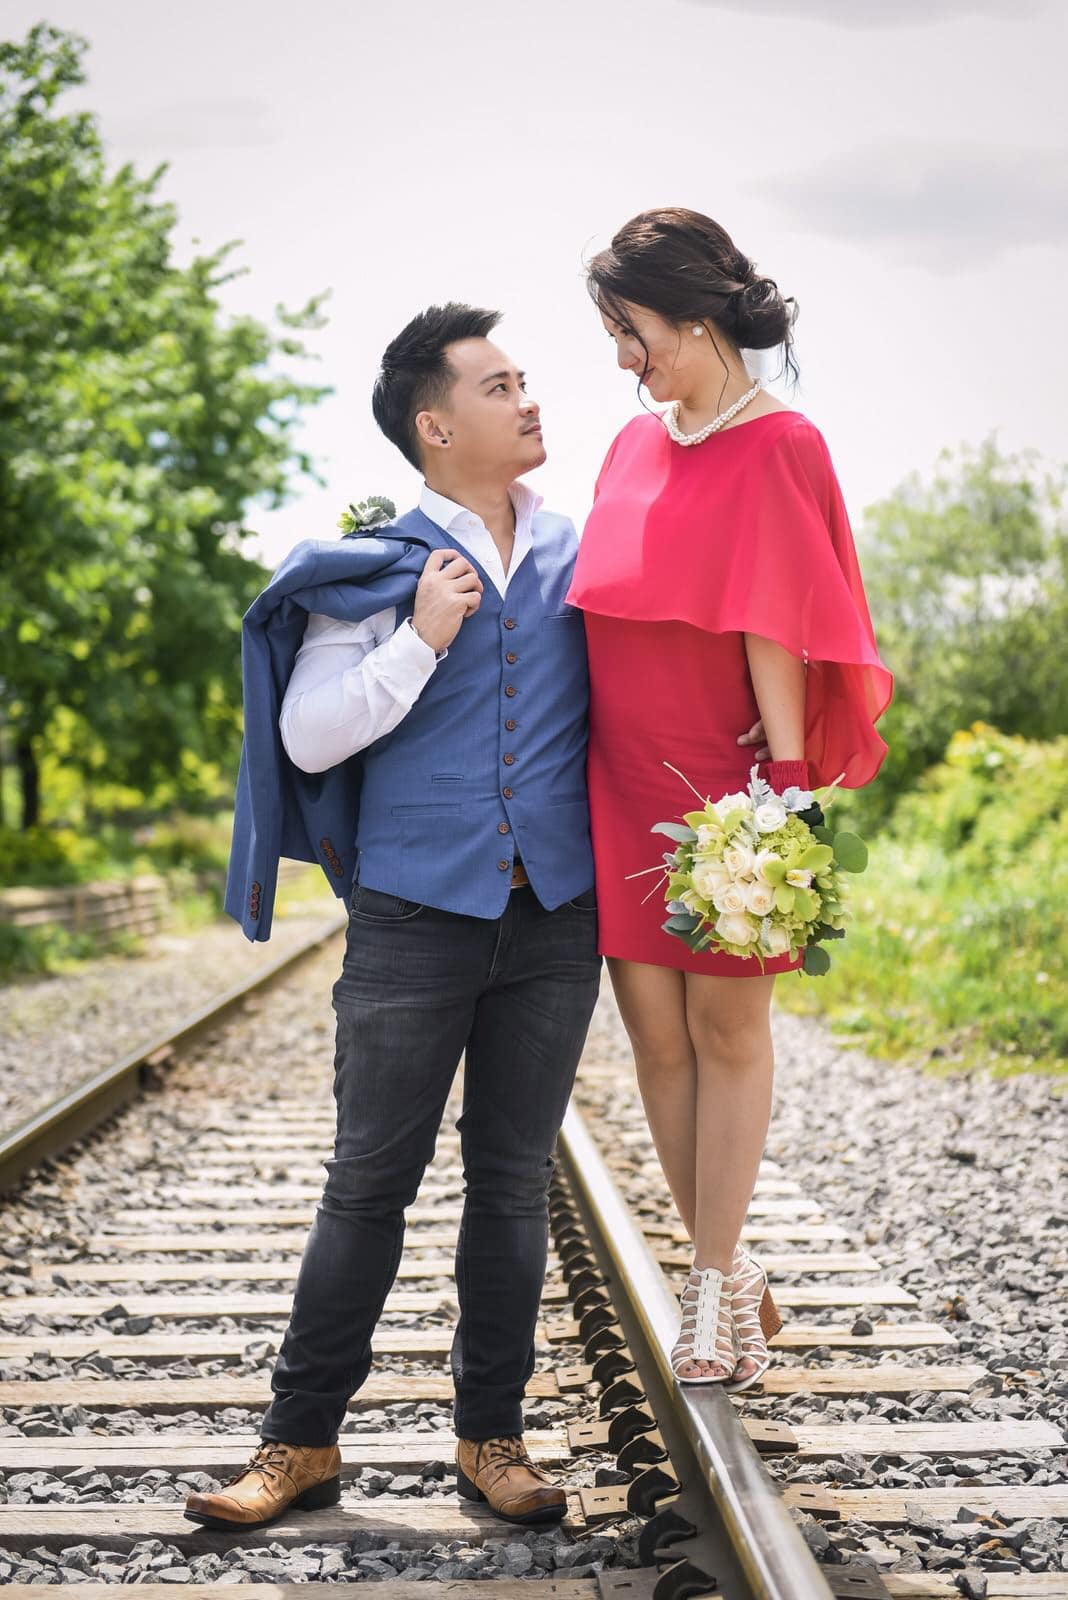 michelle evan couple engagement session casual style stylish love montreal alain simon fleurs asian prewedding photoshoot suit blue red dress matching pearl outfit laugh railroad